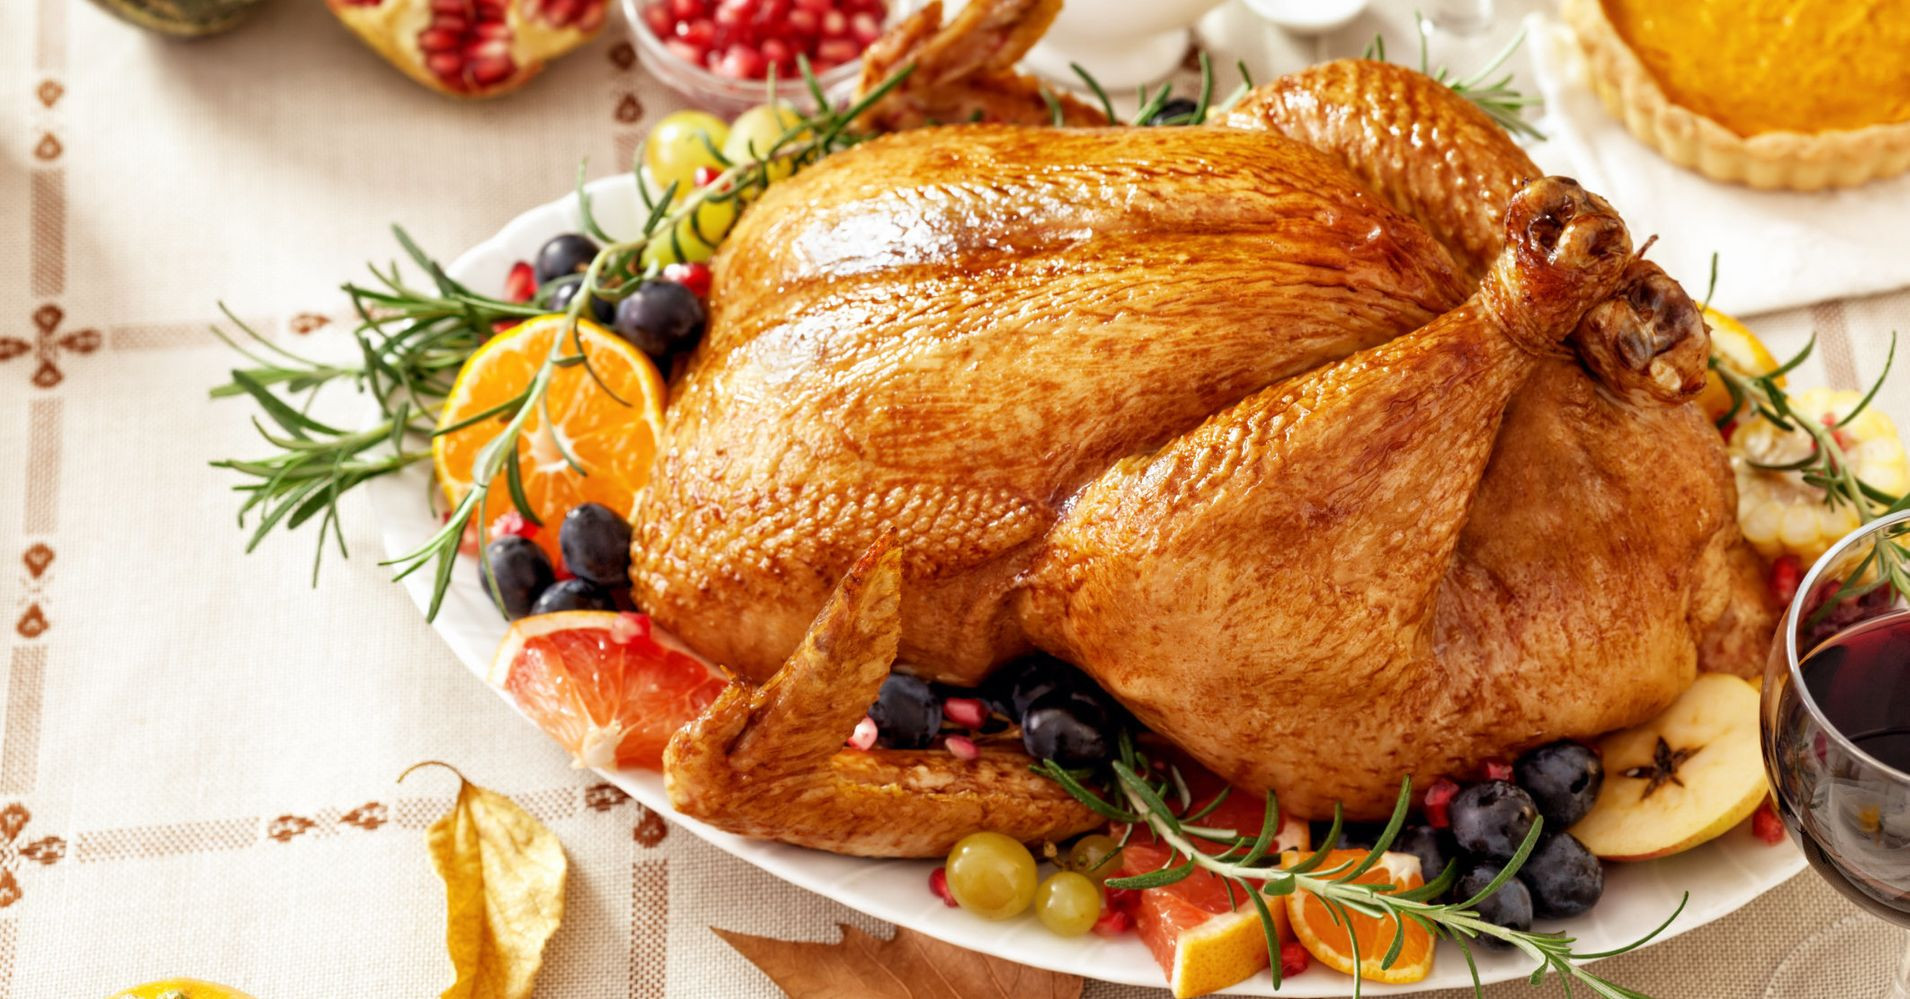 Gracias The Thanksgiving Turkey  The All Too mon Mistakes People Make With Thanksgiving